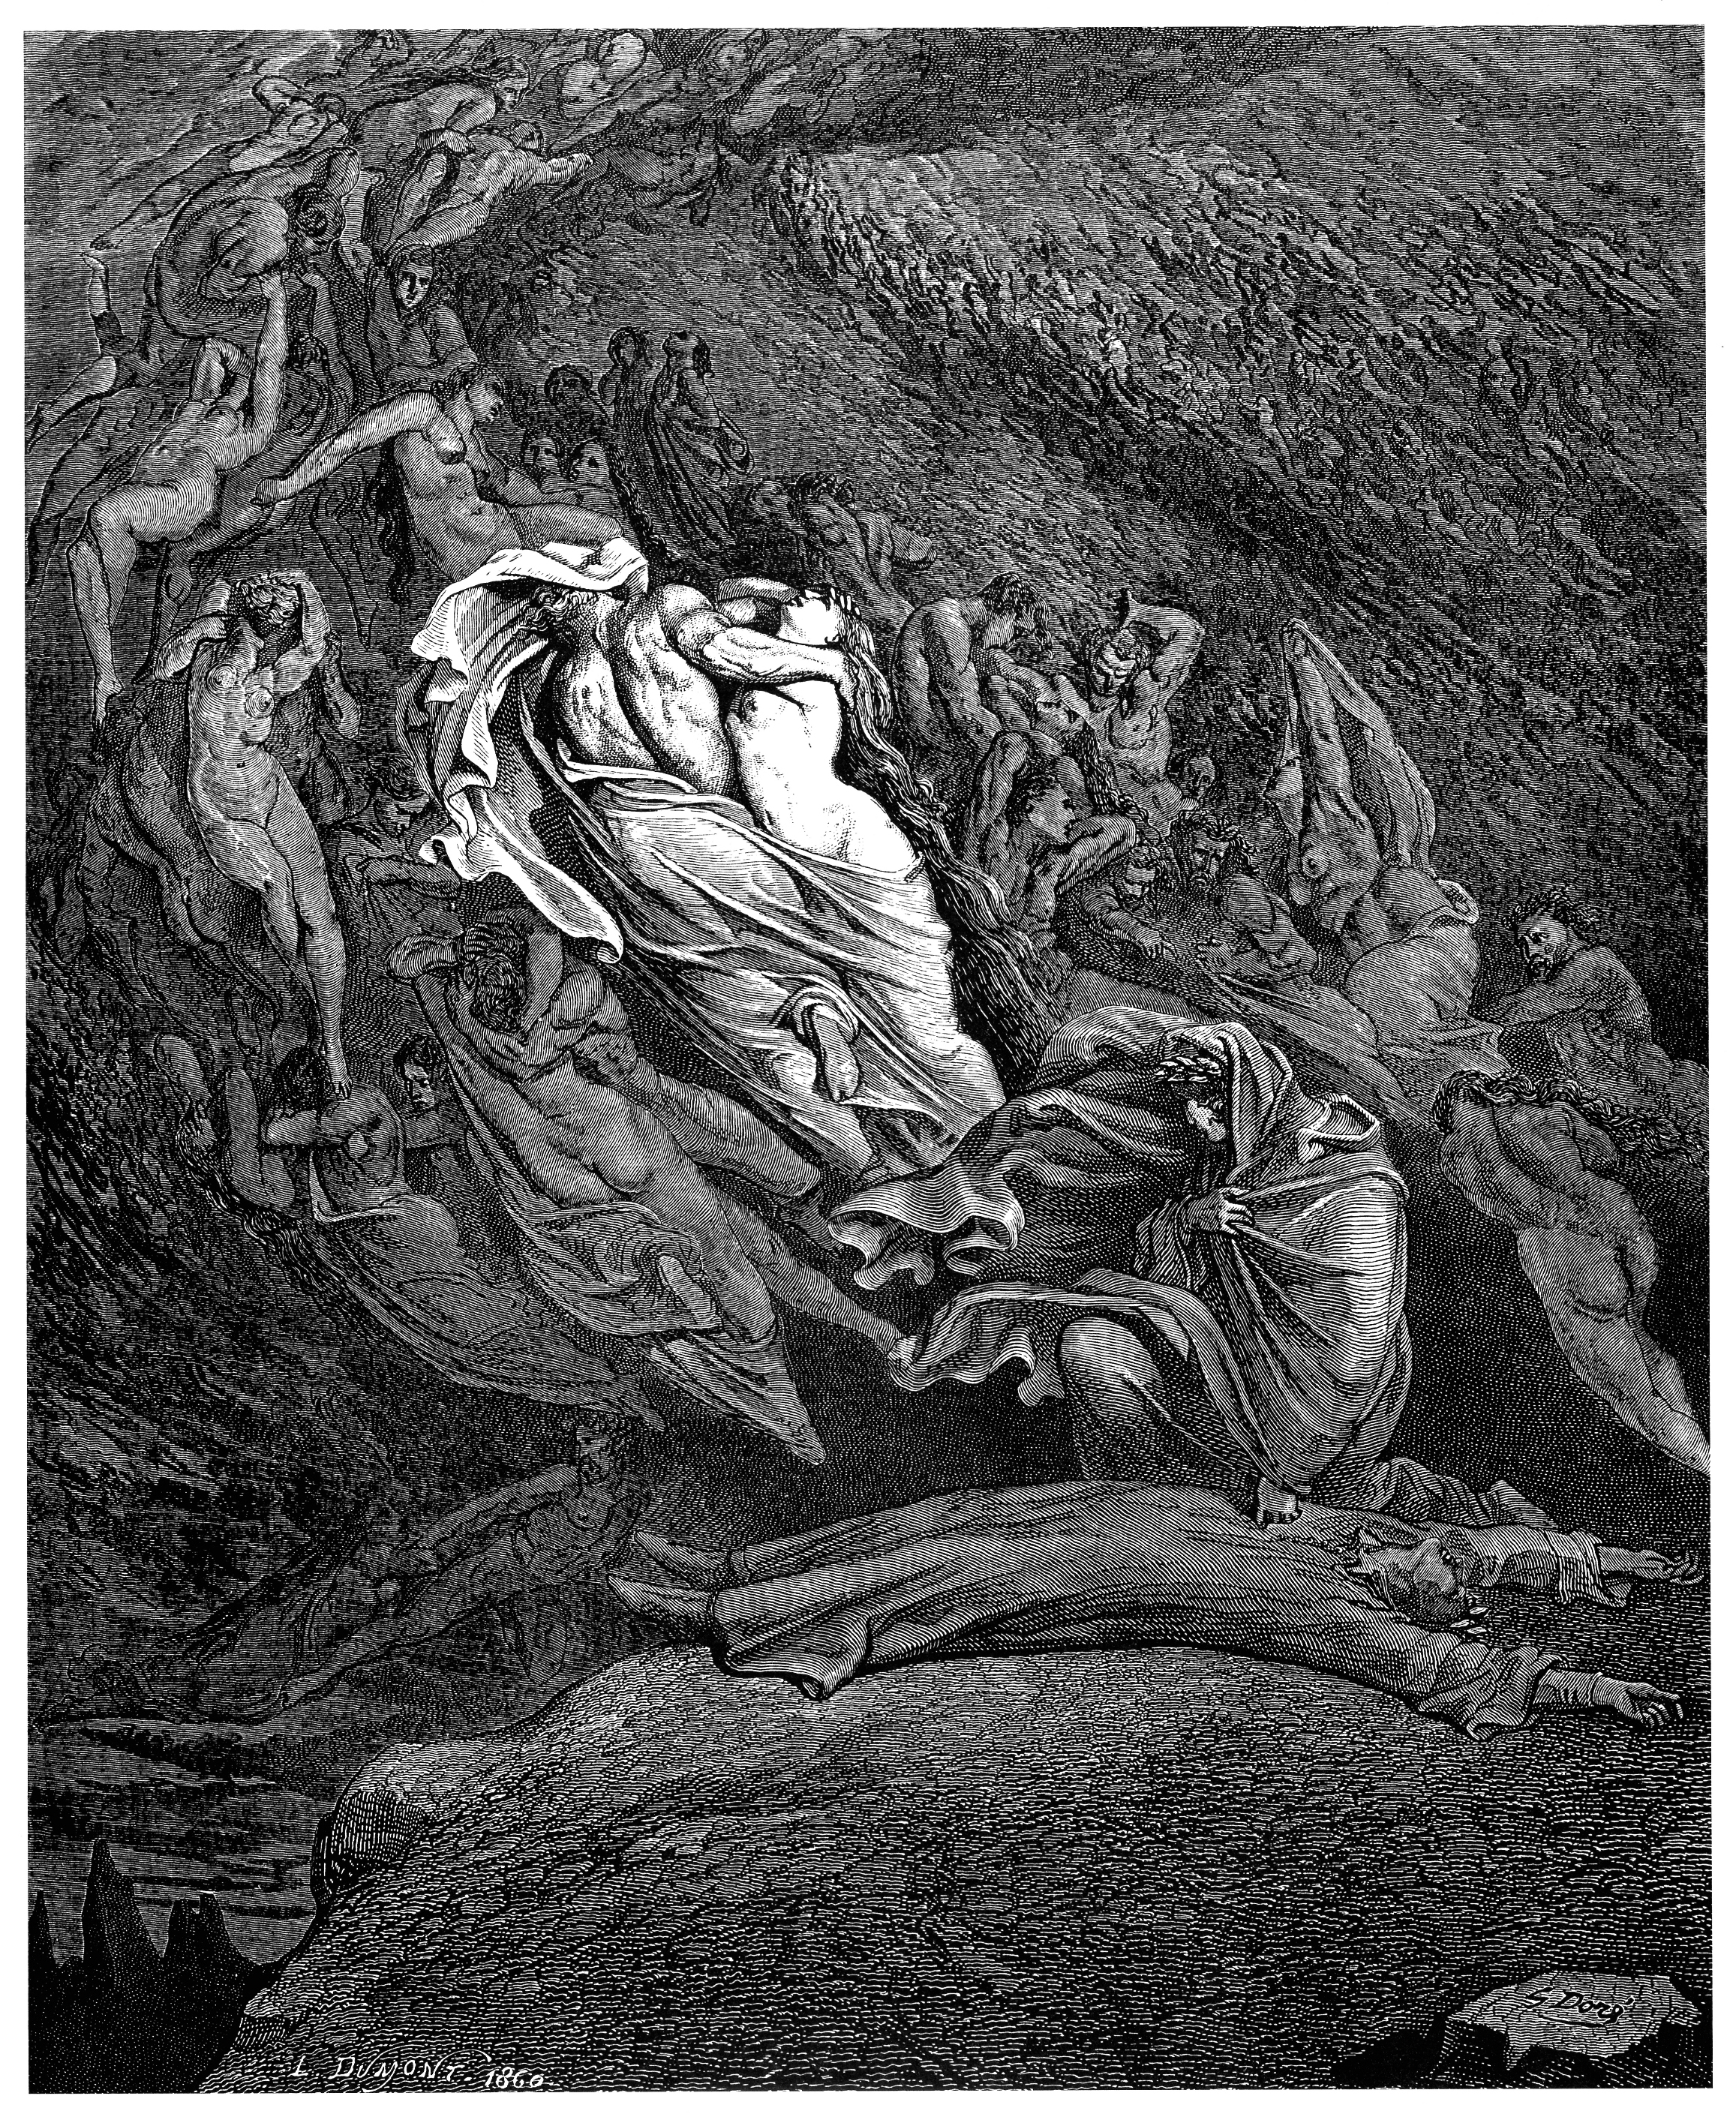 the guardians of the inferno dante essay Dante- dante acts as both the narrator and the main character of the divine comedy although it took dante many years to complete inferno, purgatorio, and paradiso, dante writes the epic poems as if he has just returned from his divine journey.